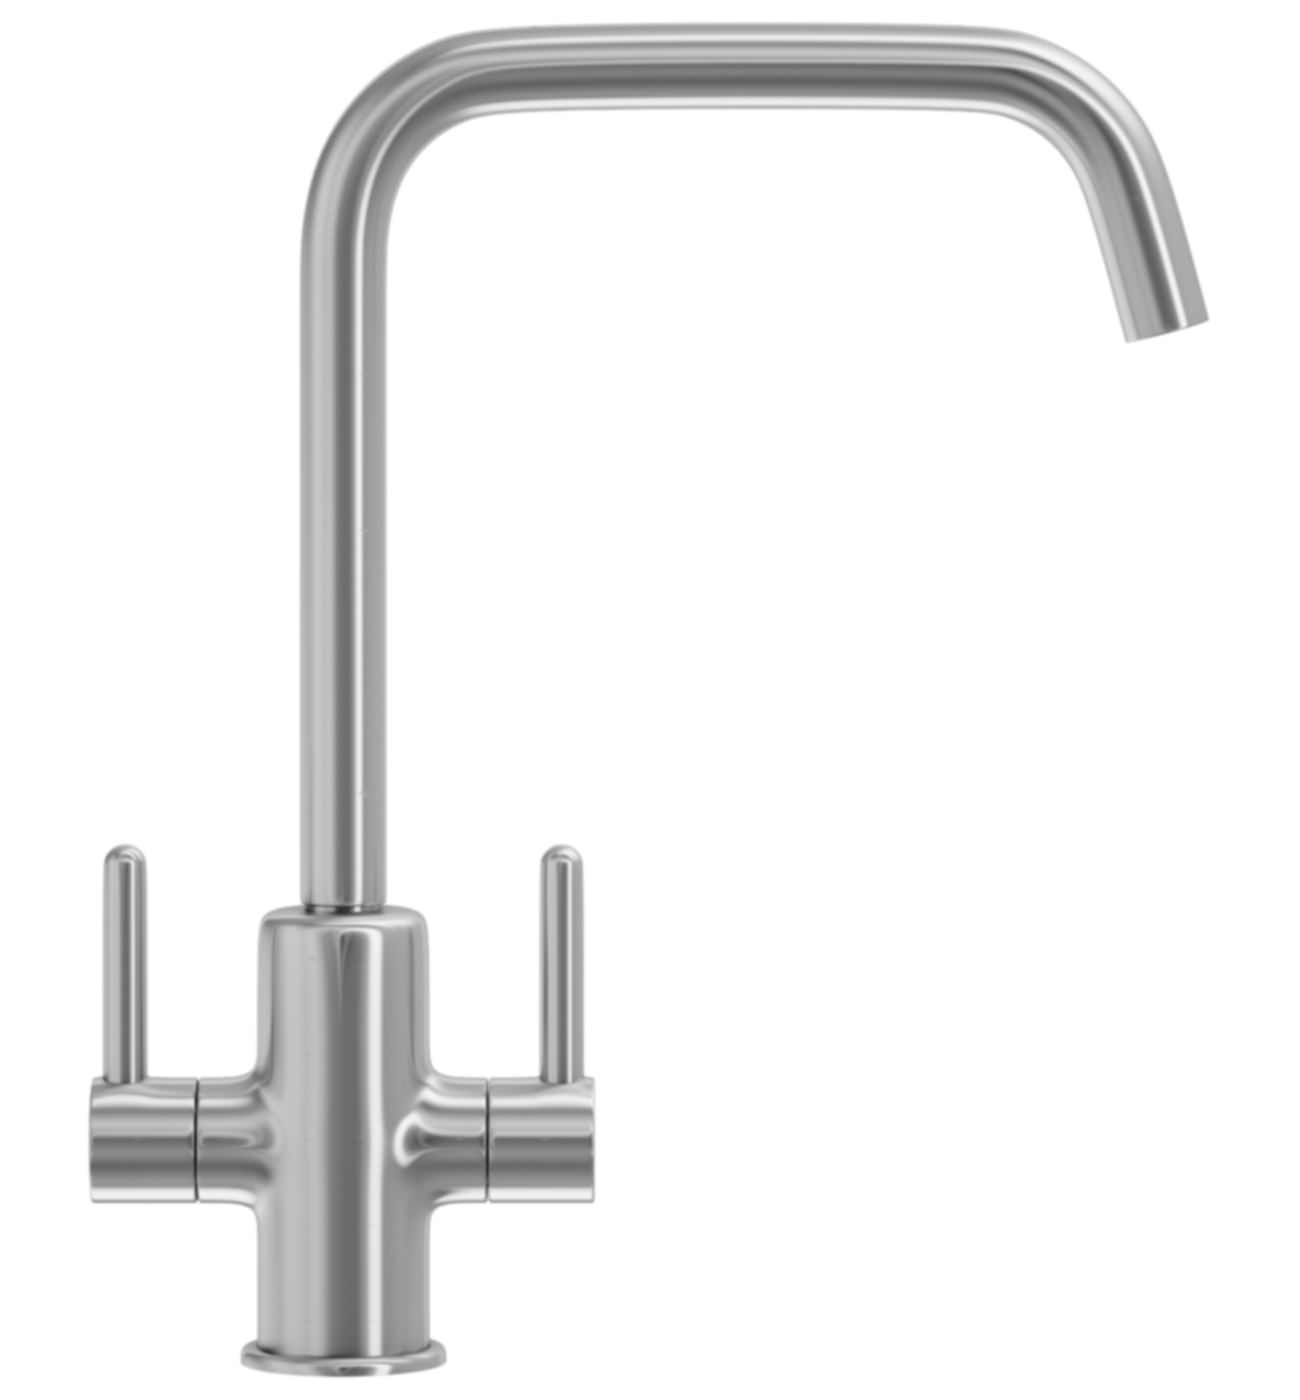 Franke Kitchen Mixer : ... taps kitchen mixer taps franke maris kitchen sink mixer tap silksteel